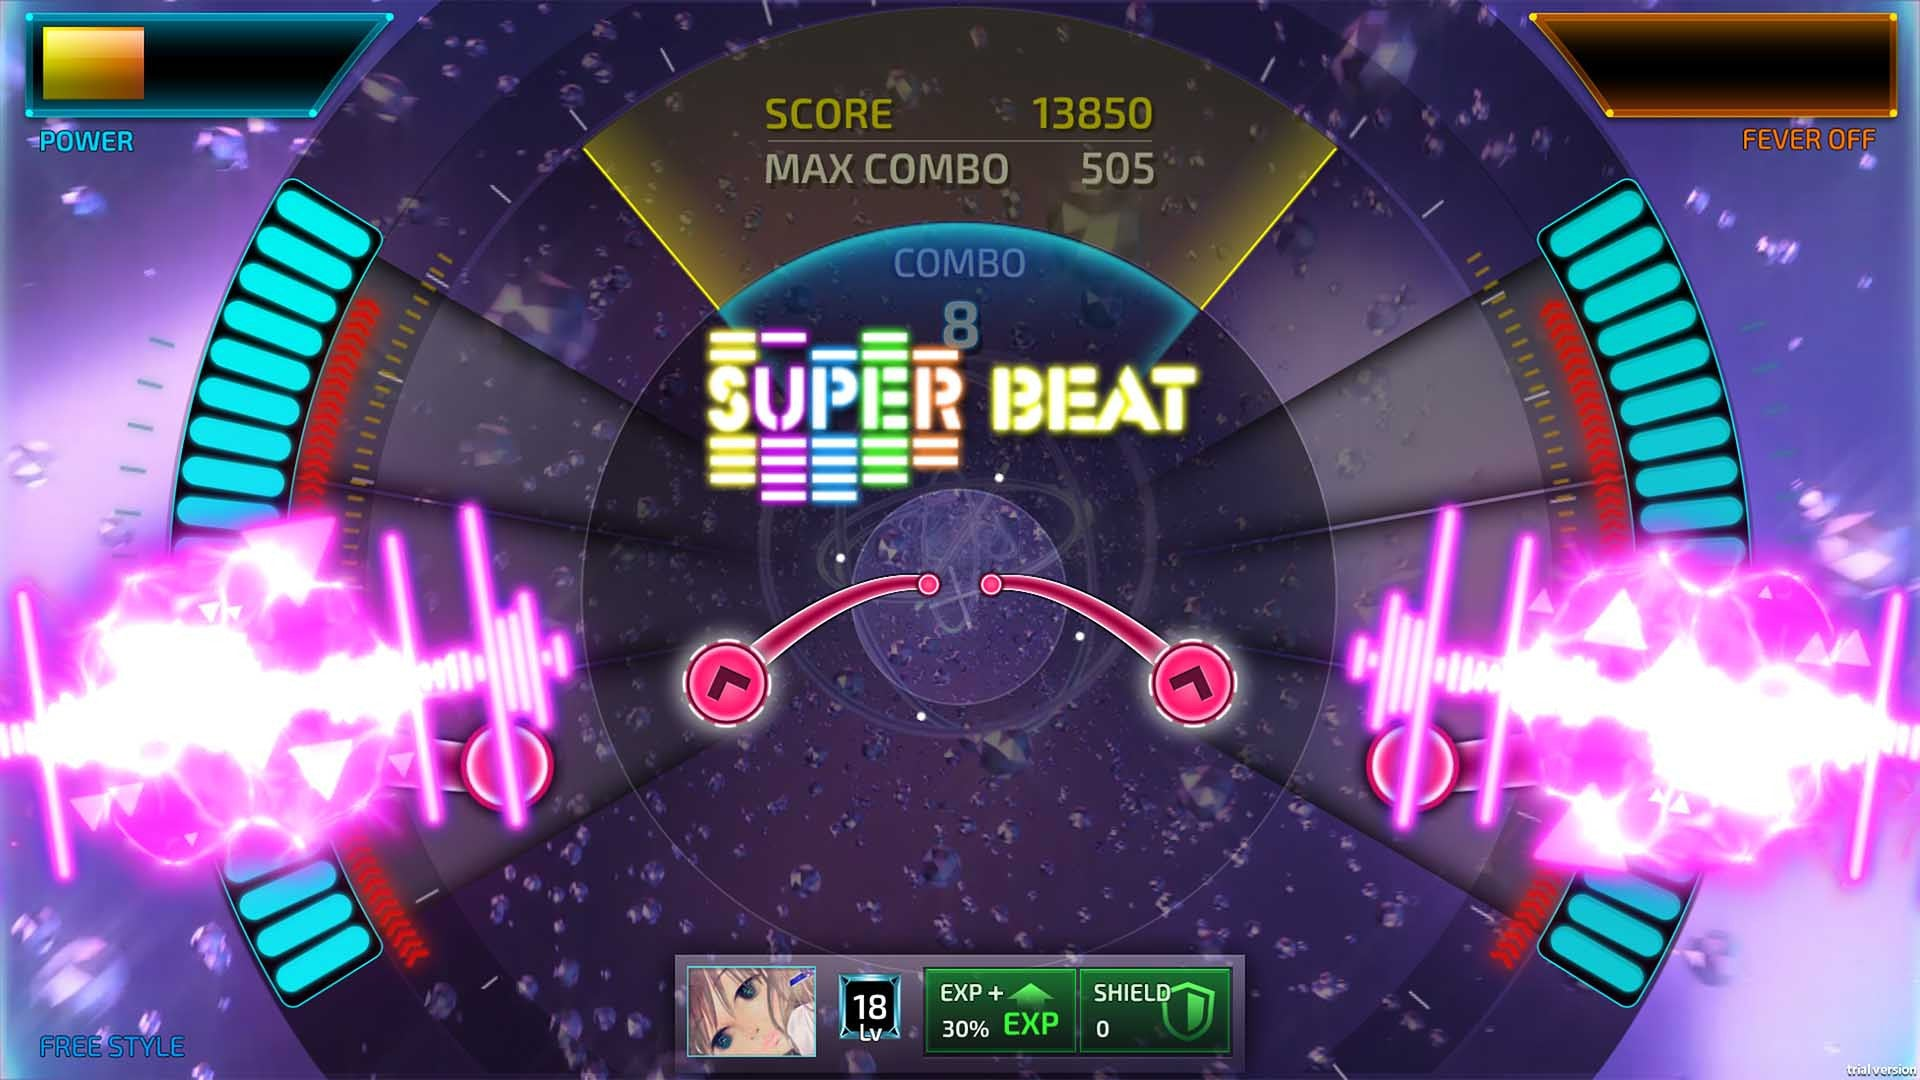 Superbeat Xonic EX - PS4 - Video Games by Rising Star Games The Chelsea Gamer